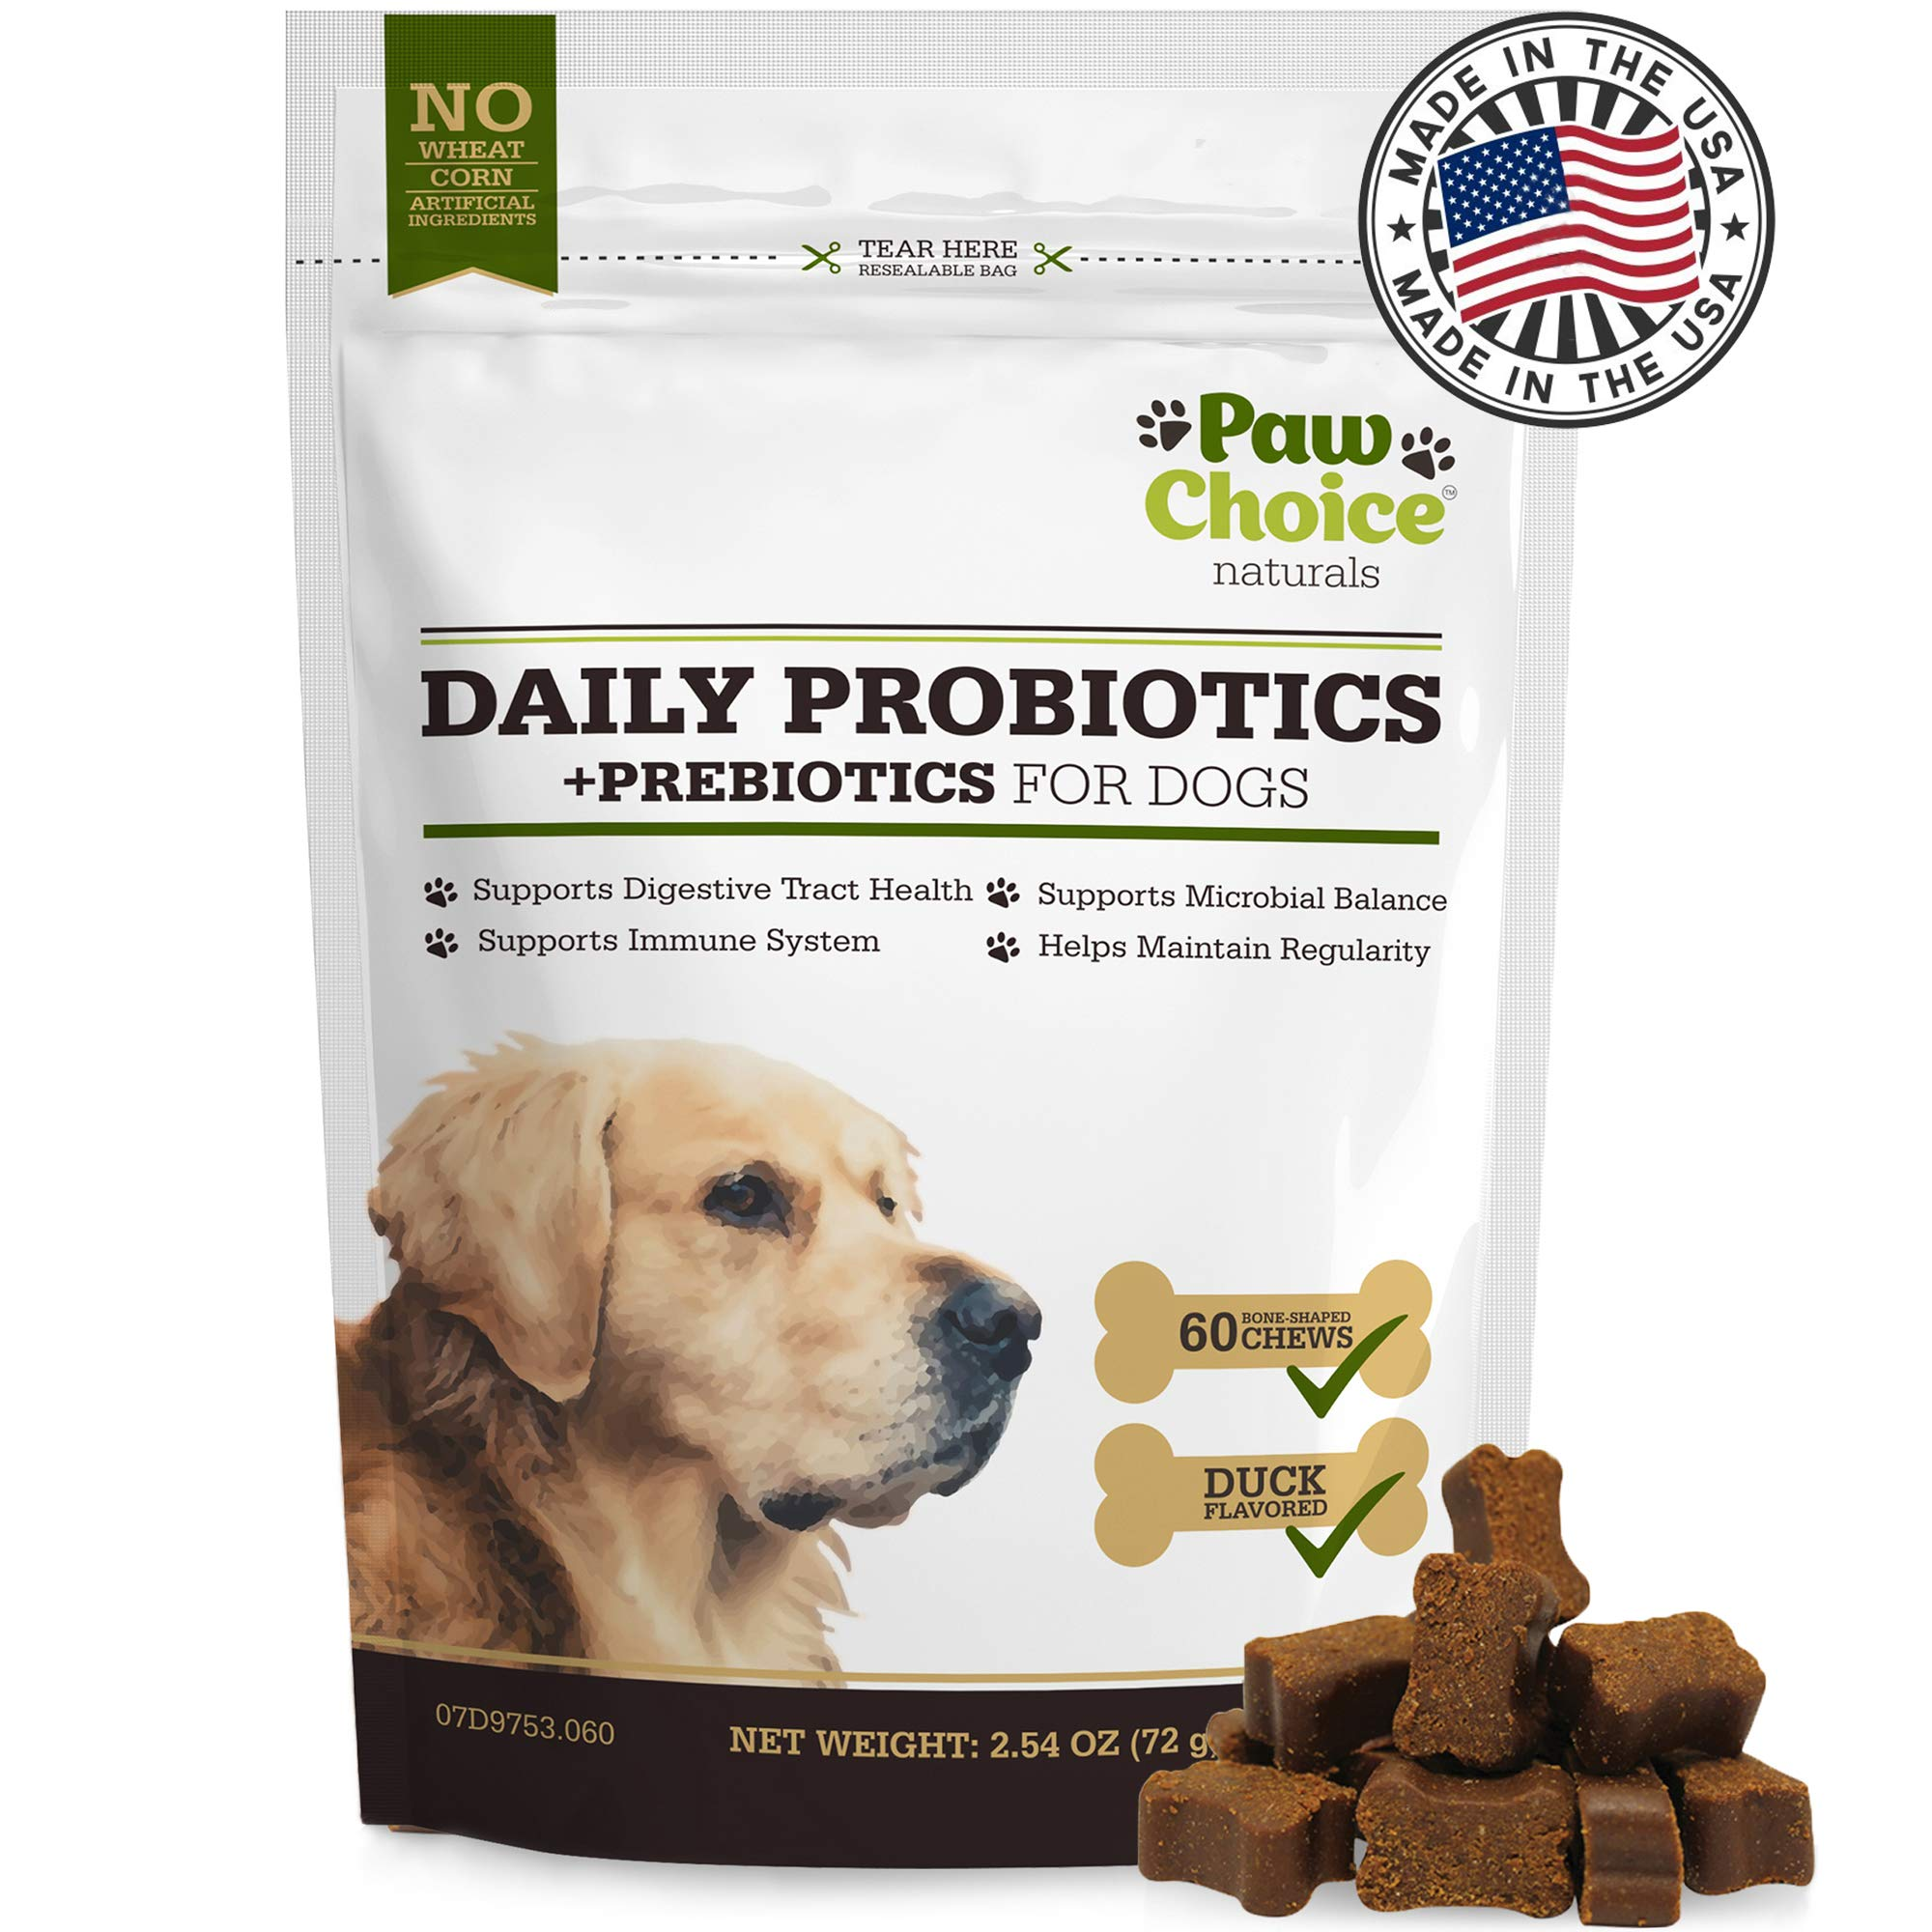 Probiotics for Dogs with Prebiotics - Daily Chews for Digestion, Regularity, Diarrhea Relief, Plus Supports Immune System and Health - Natural Supplement and Treat Made in USA by Paw Choice (Image #1)